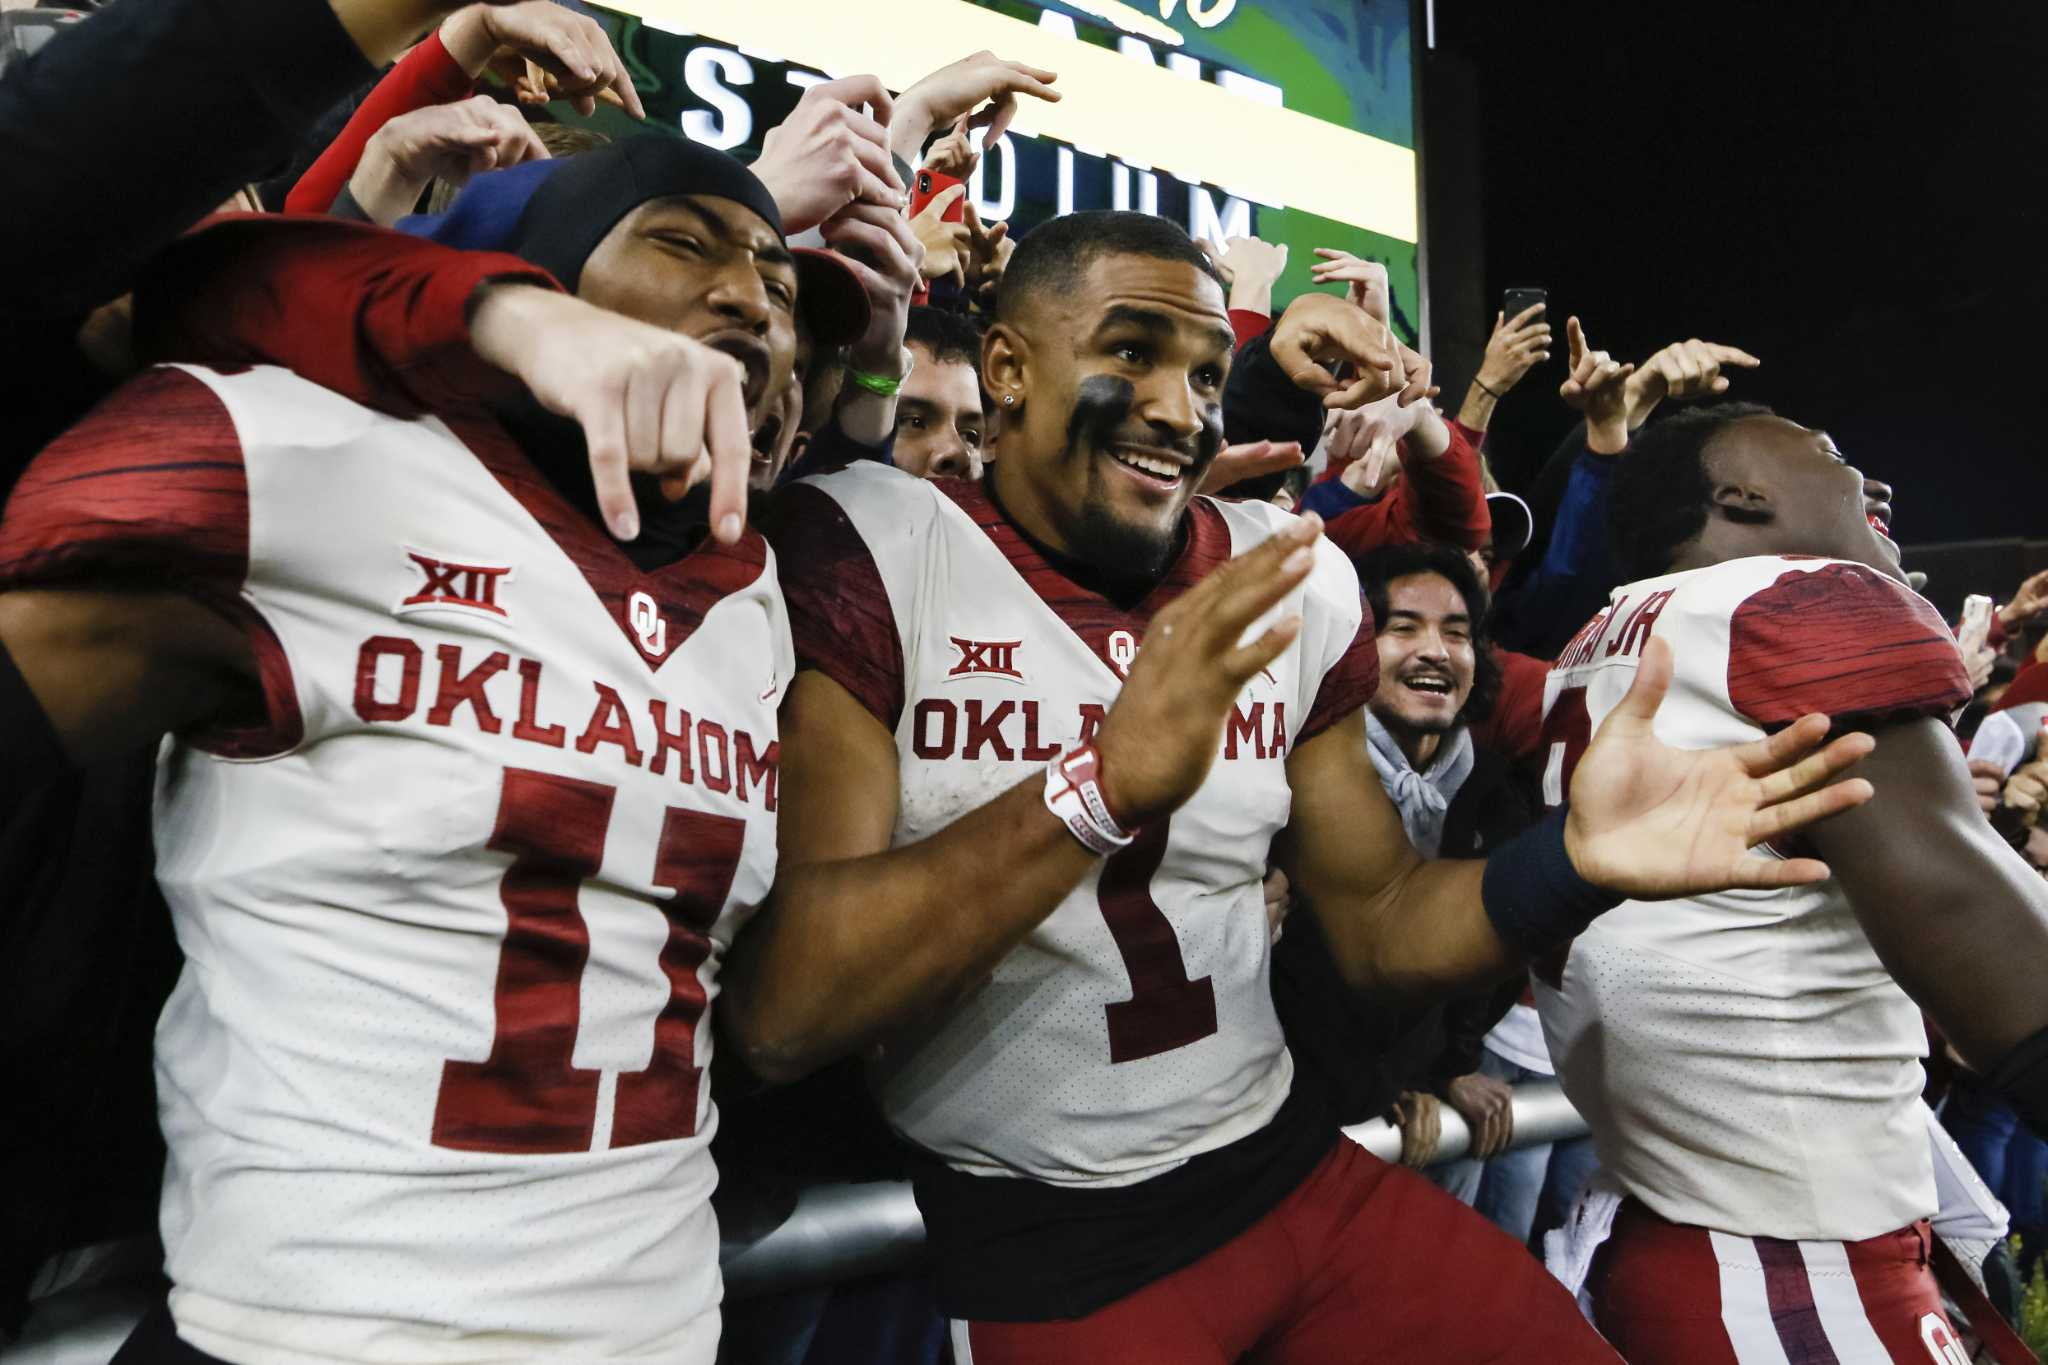 Creech: Looking at the bigger picture after the Baylor-Oklahoma showdown